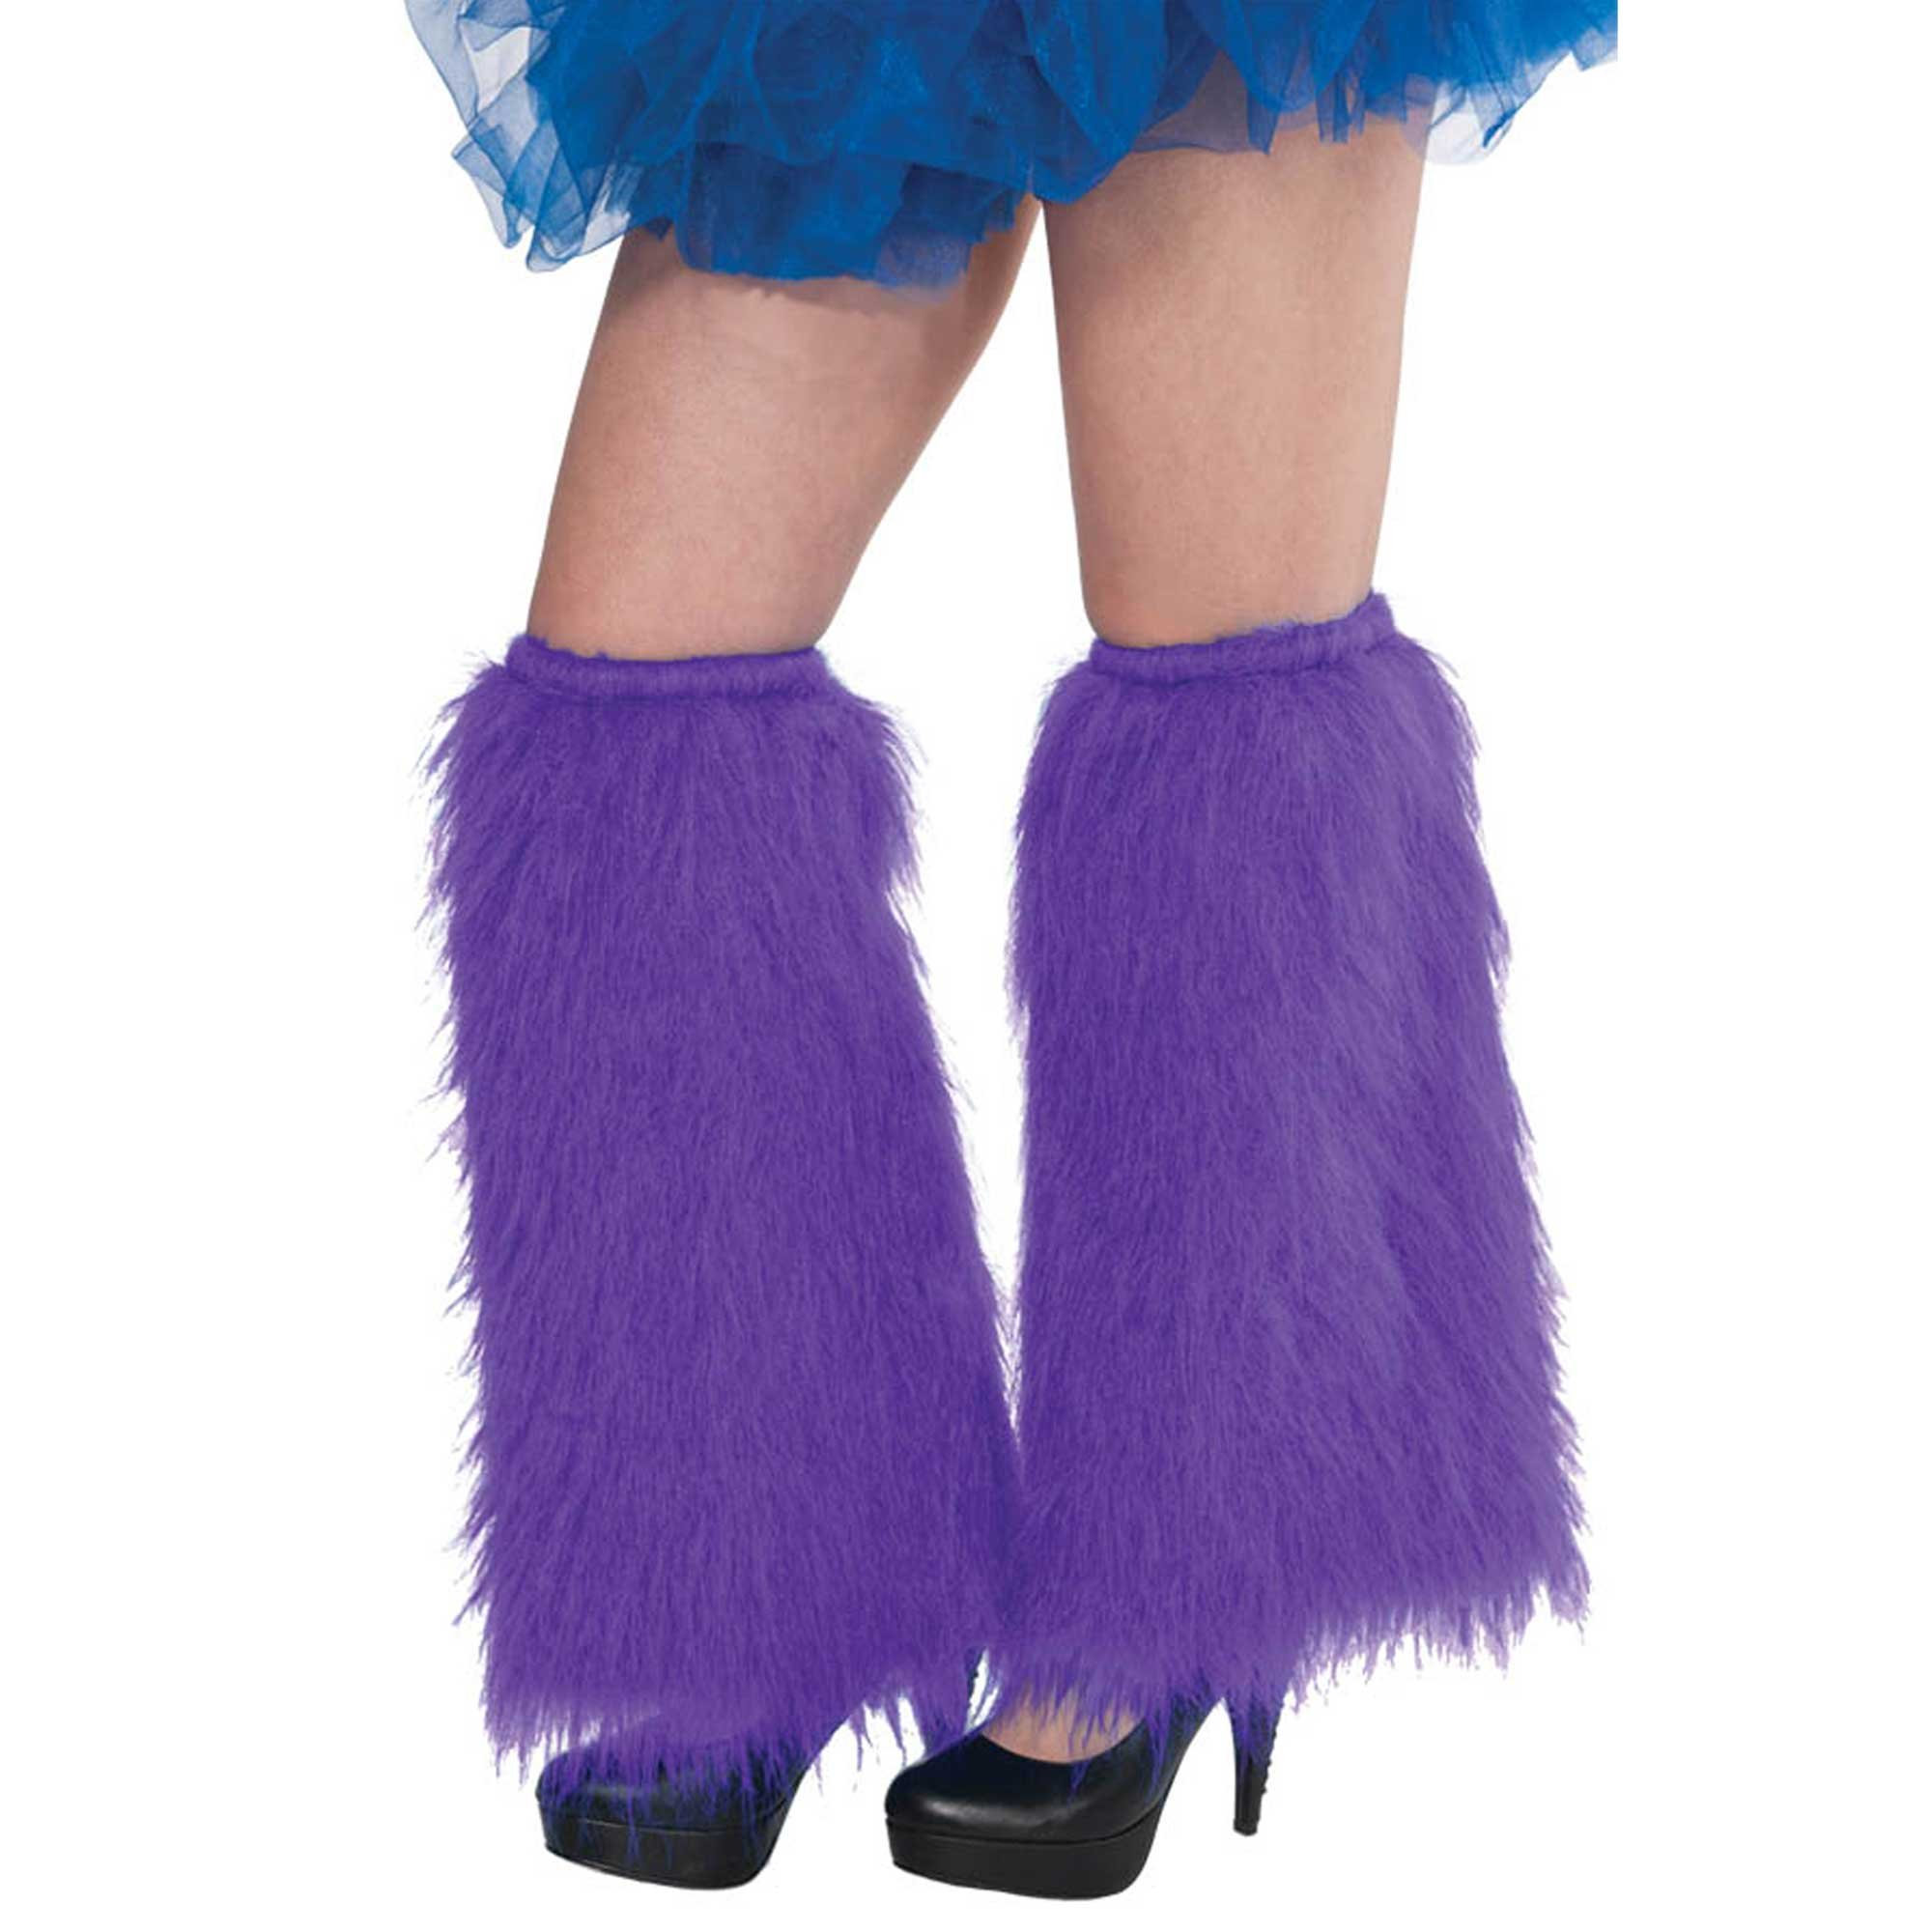 1980'S PLUSH & FLUFFY PURPLE LEG WARMERS